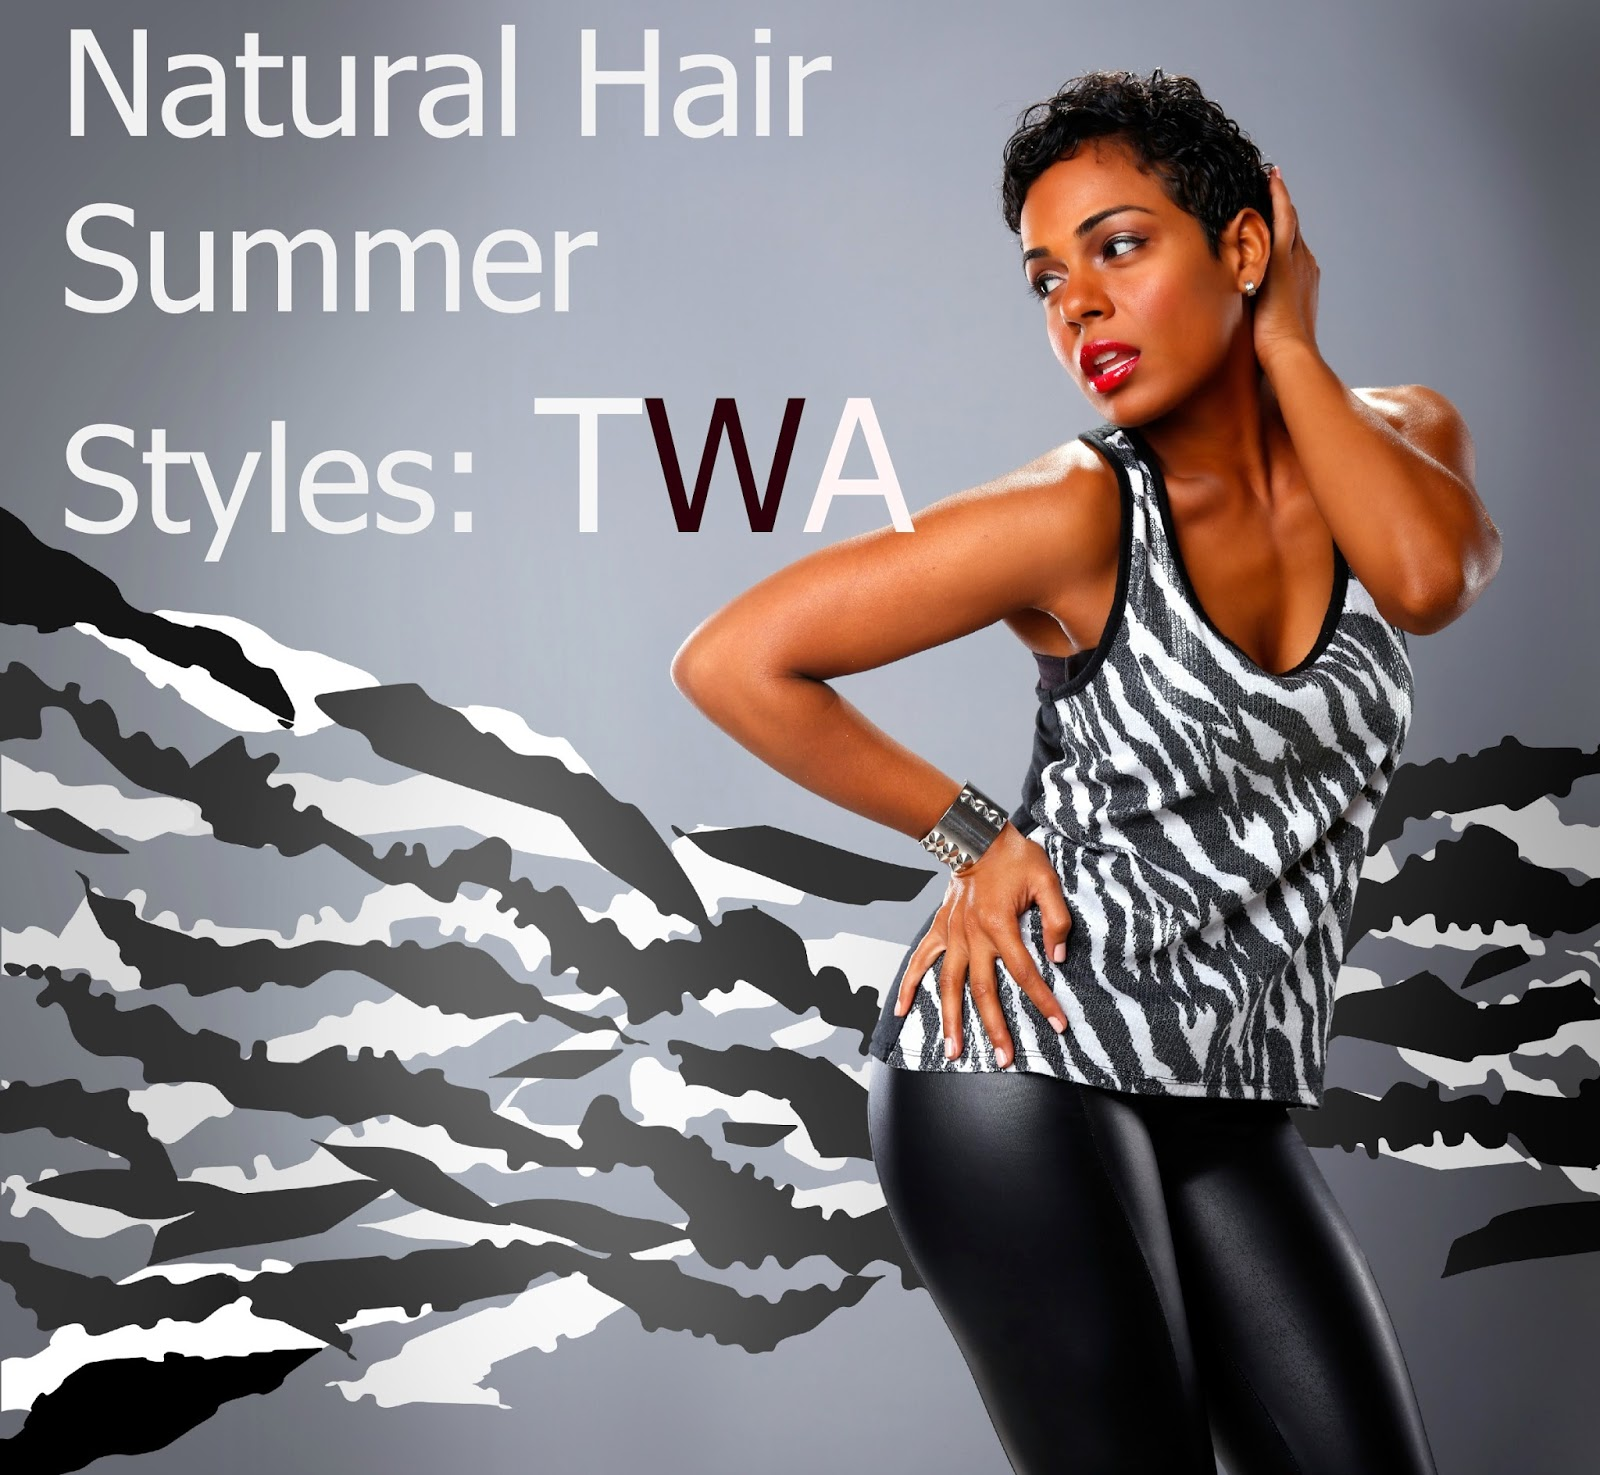 Natural Hair Summer Styles: TWA